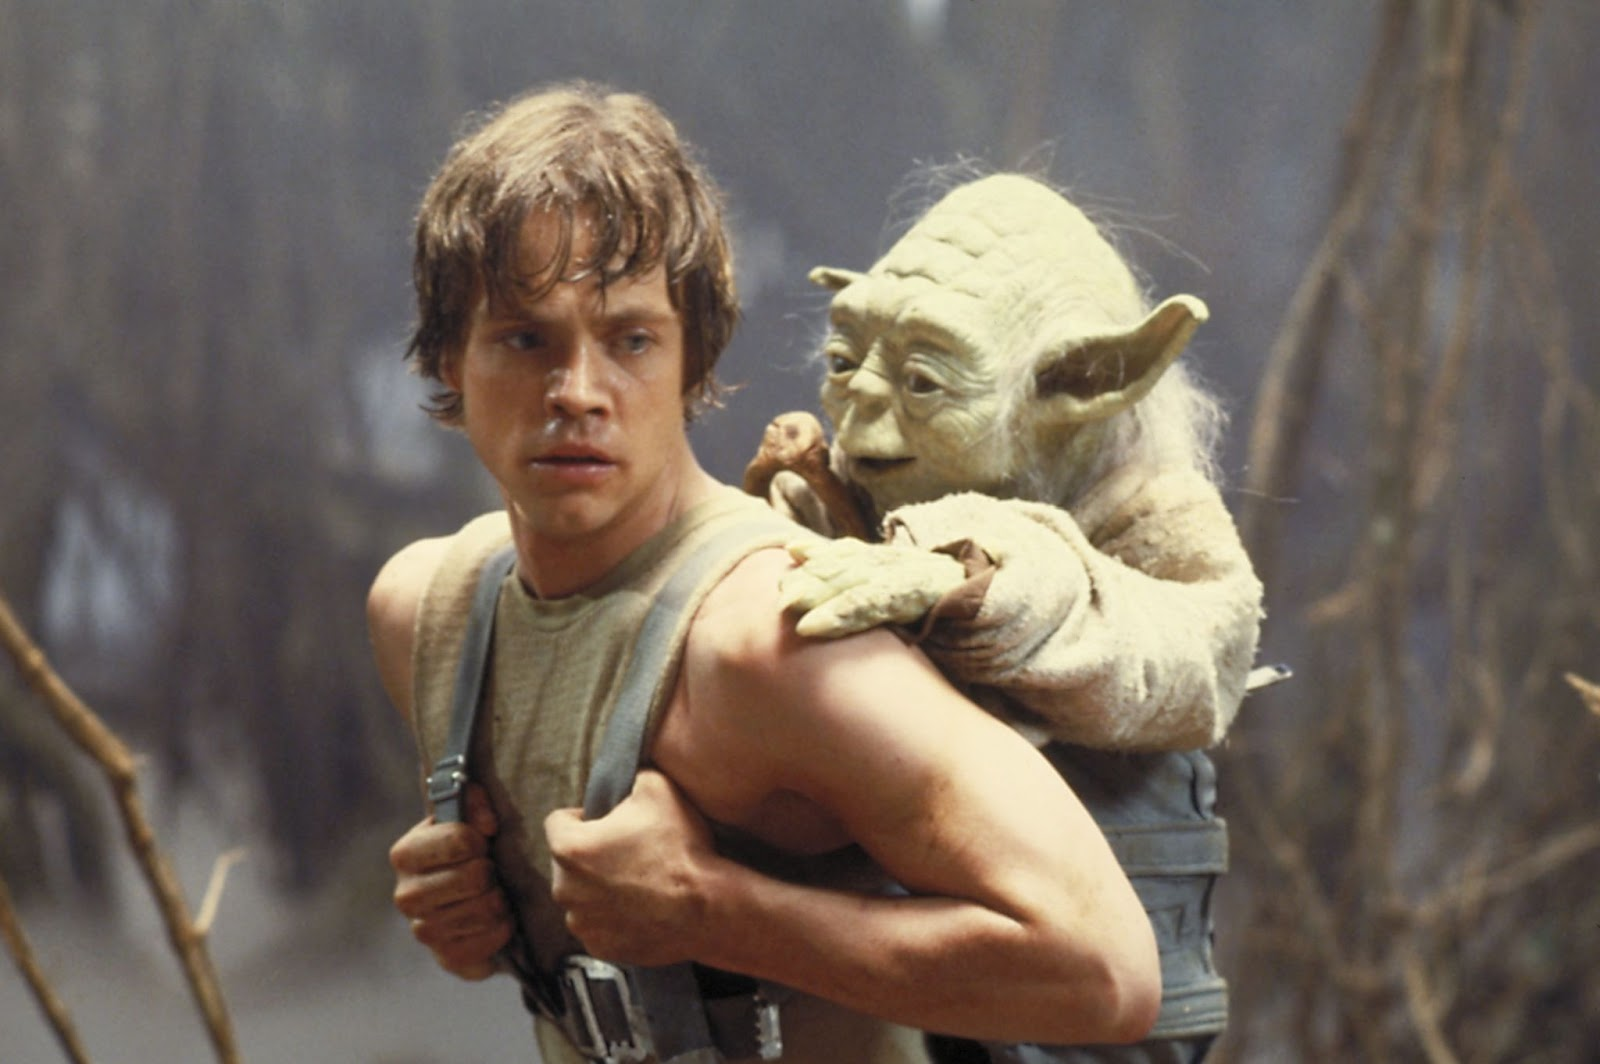 Images: The Force Awakens Cut Scene Image Reveals a Young Luke